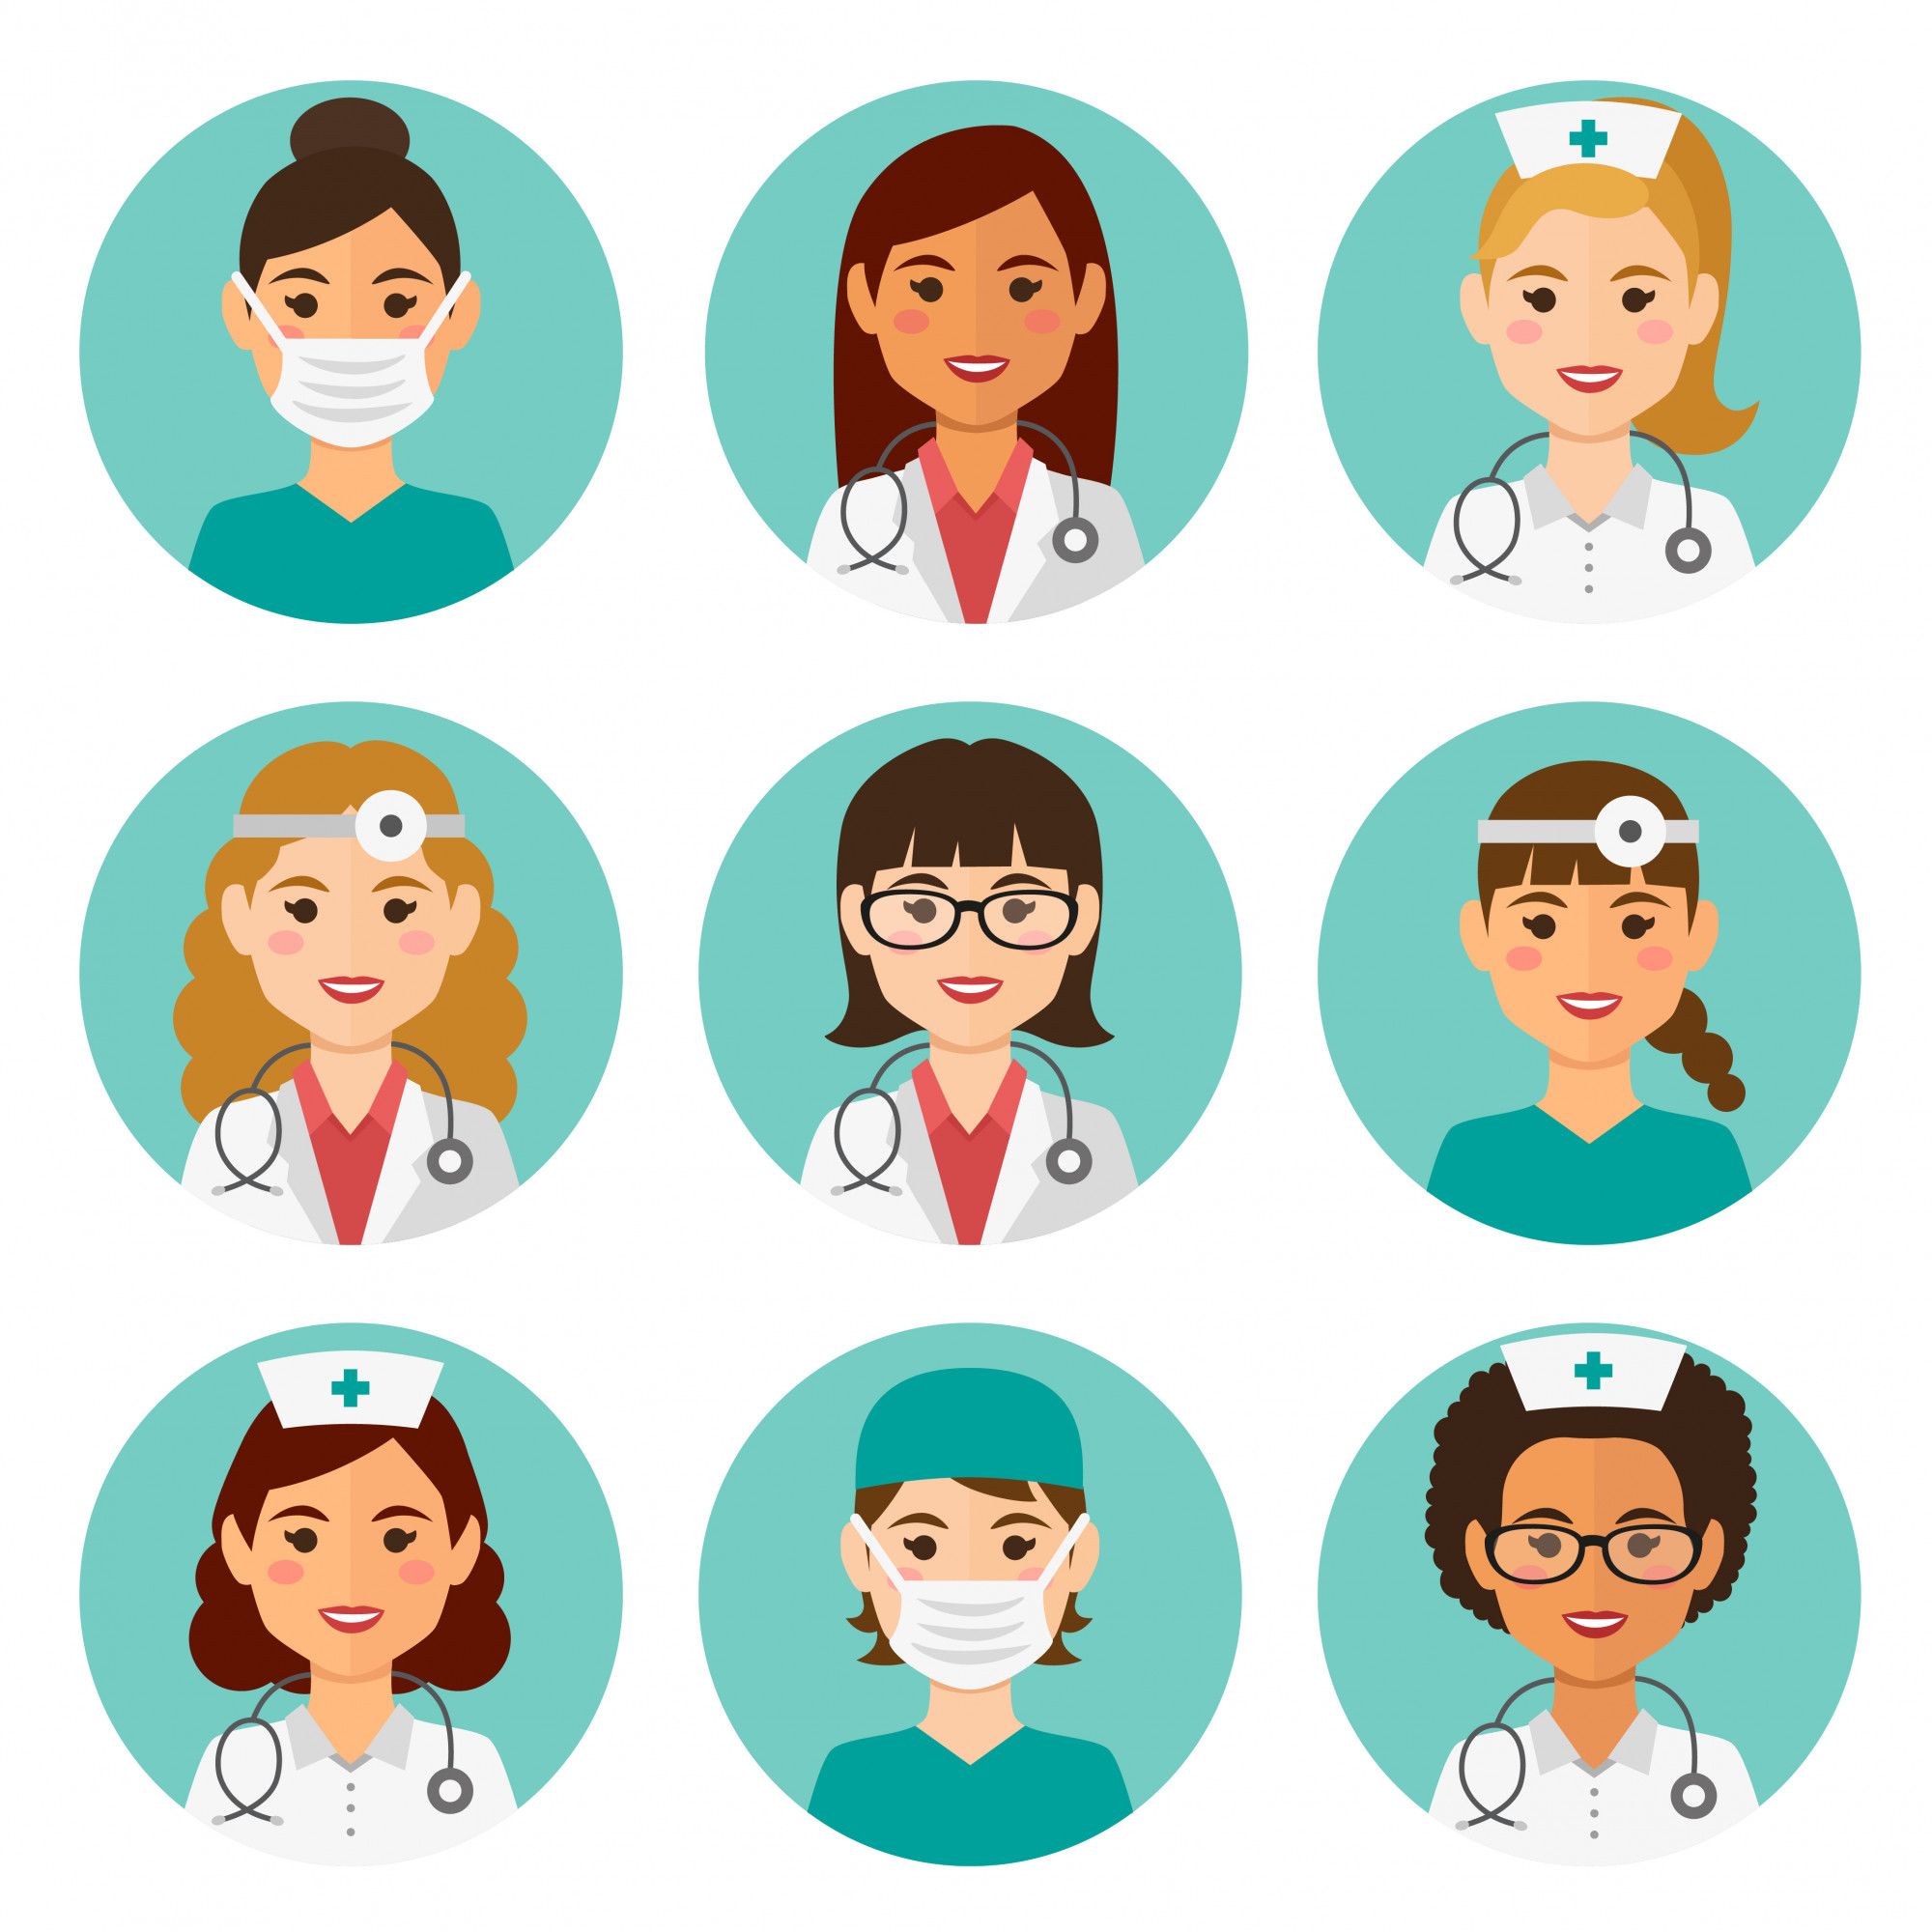 Medicine flat female avatars set with doctors and nurses